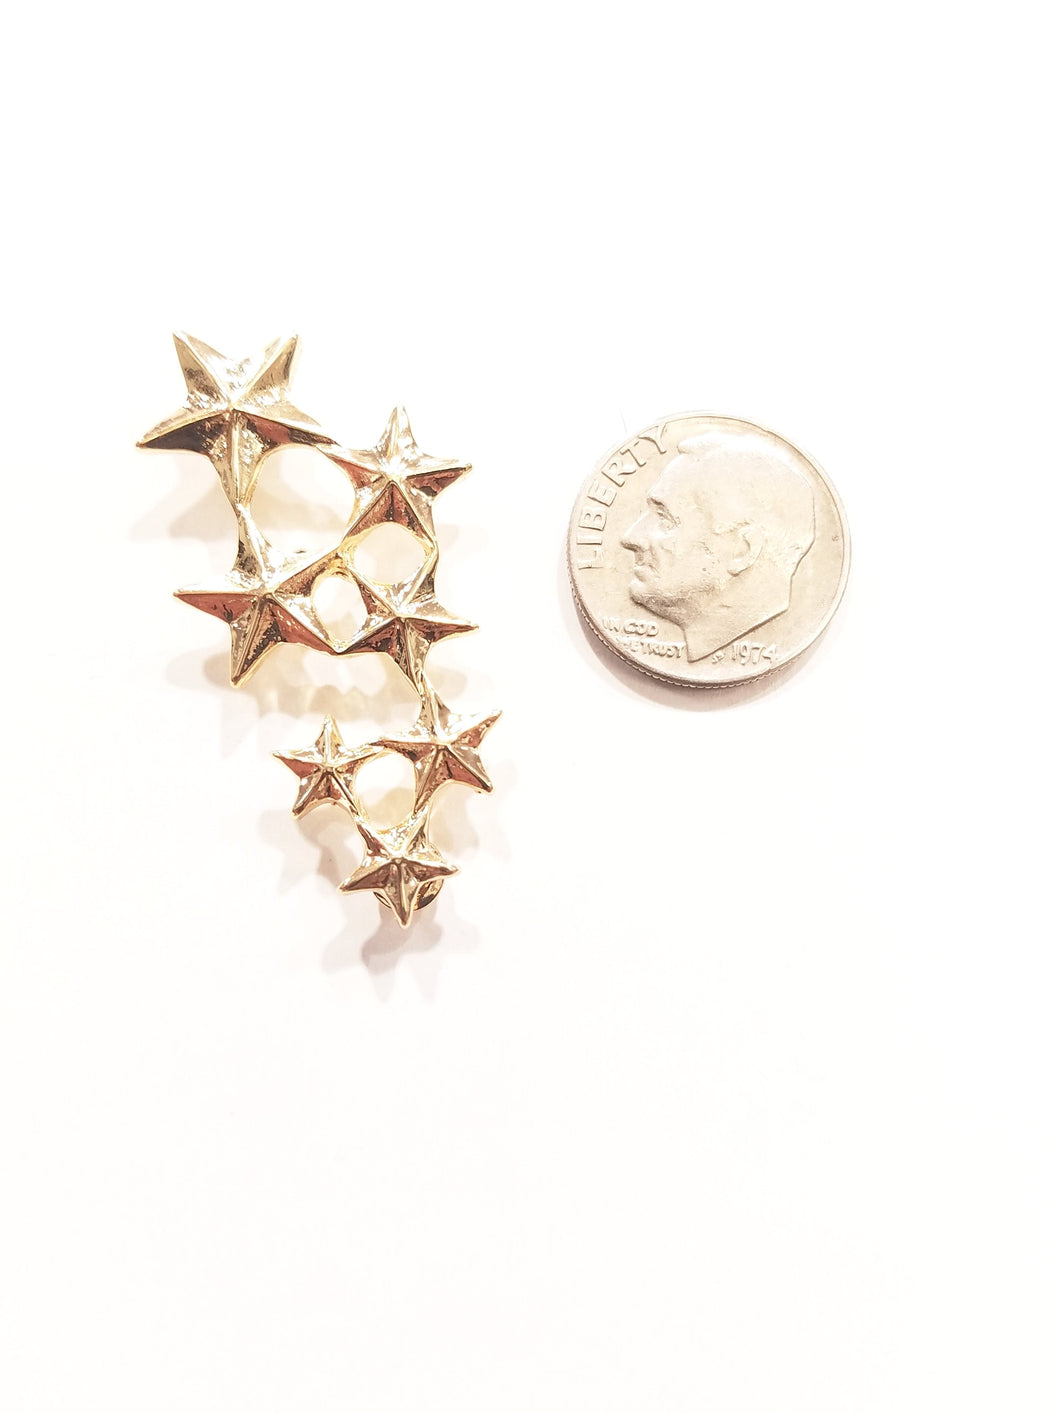 All Star Gold Lapel Pin